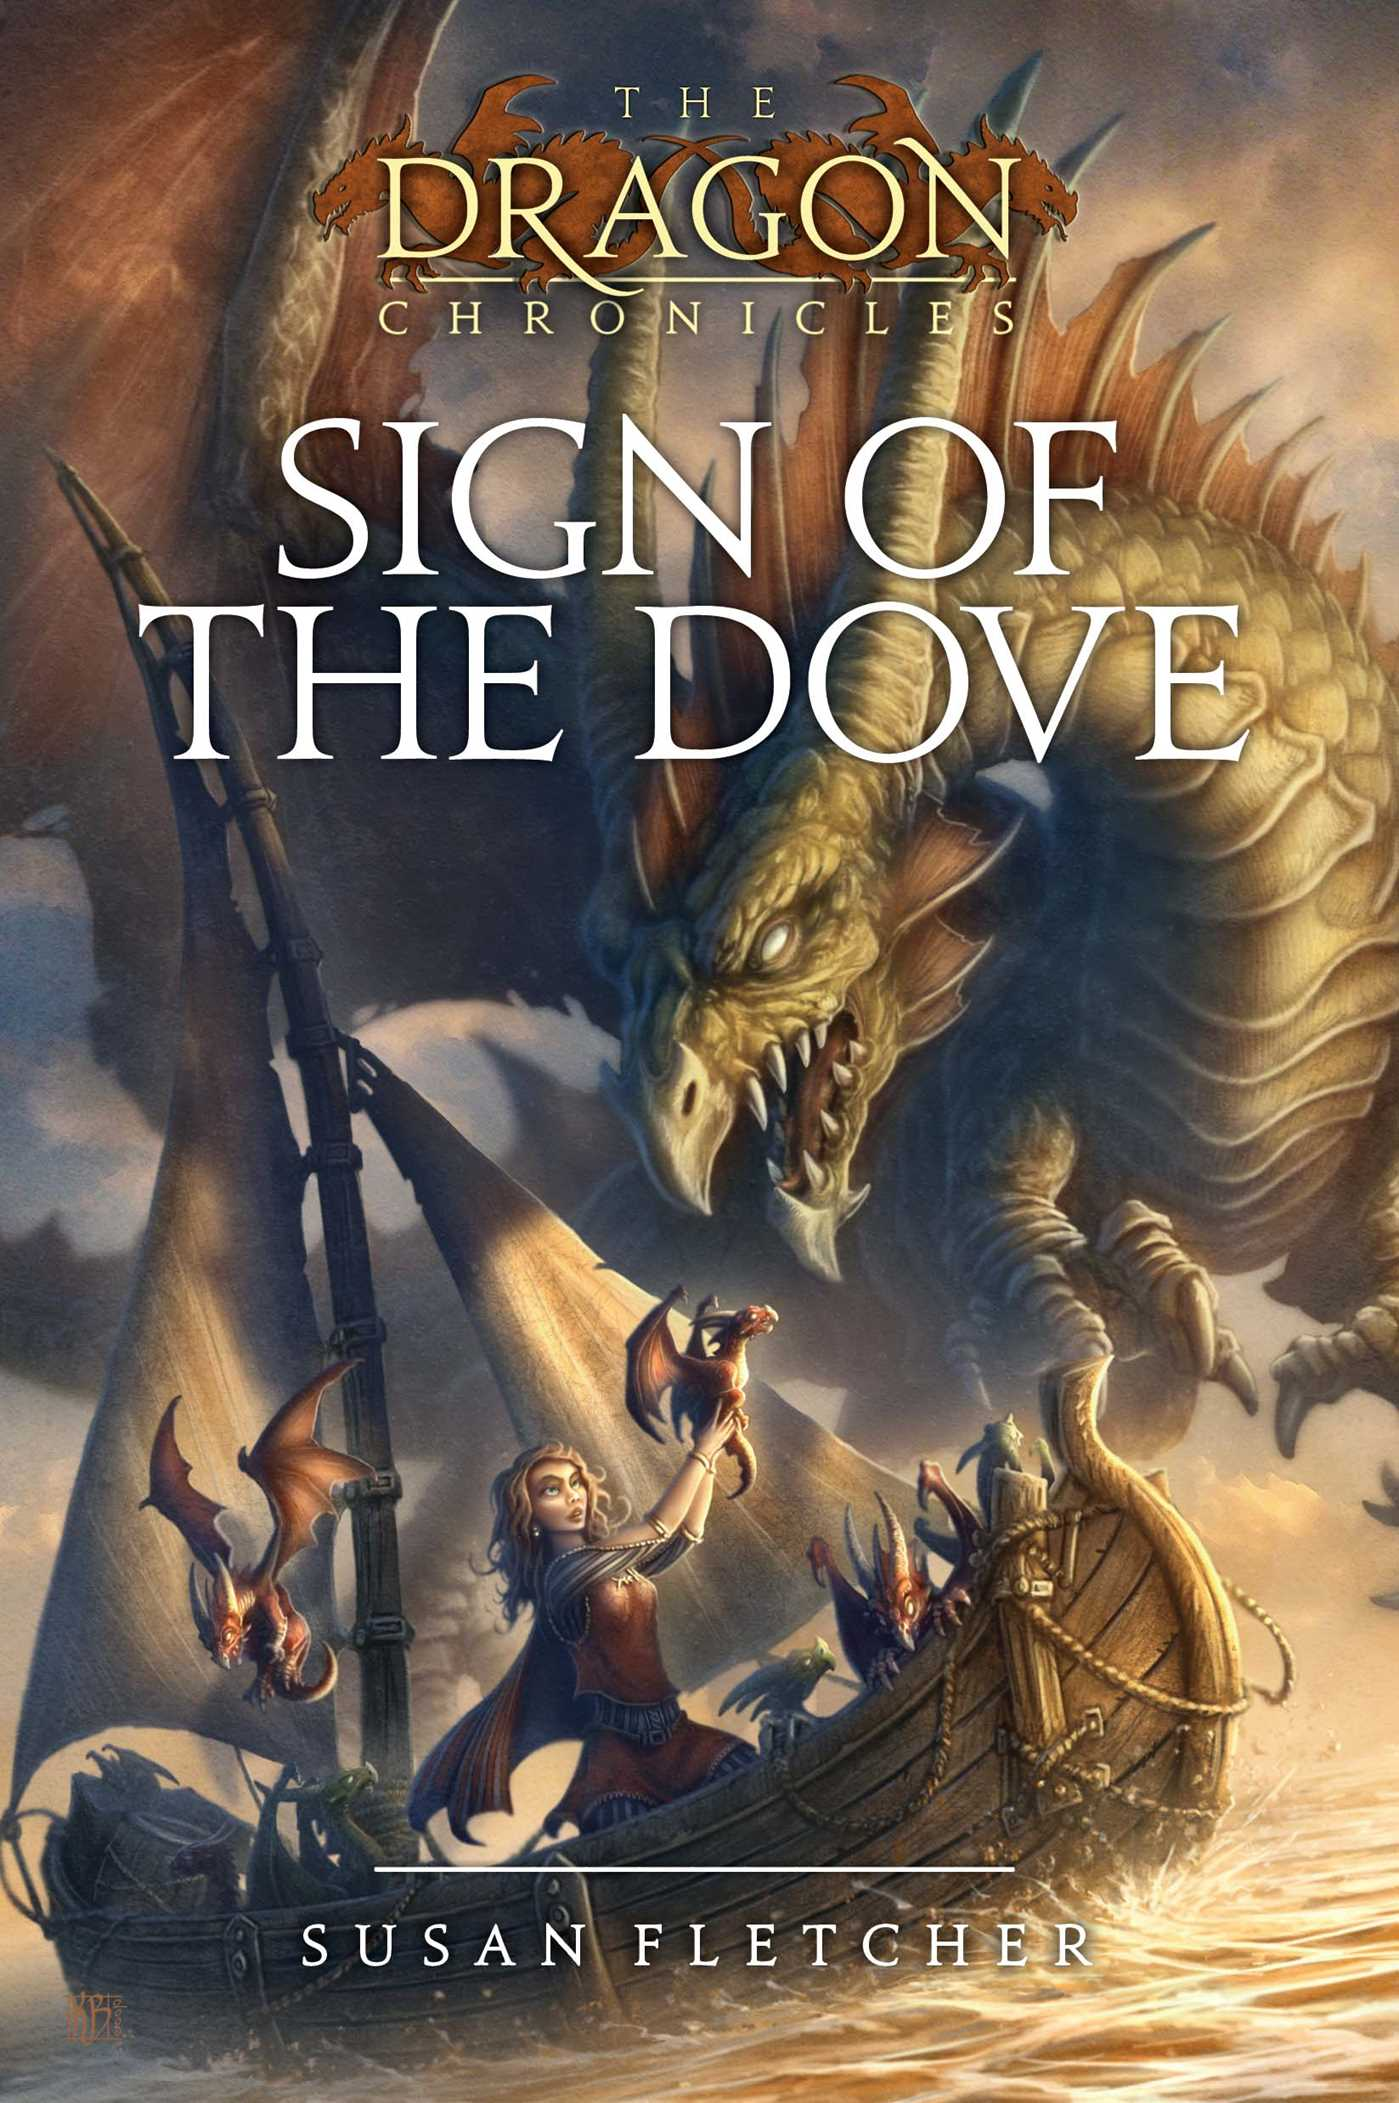 Sign of the dove 9781416997146 hr